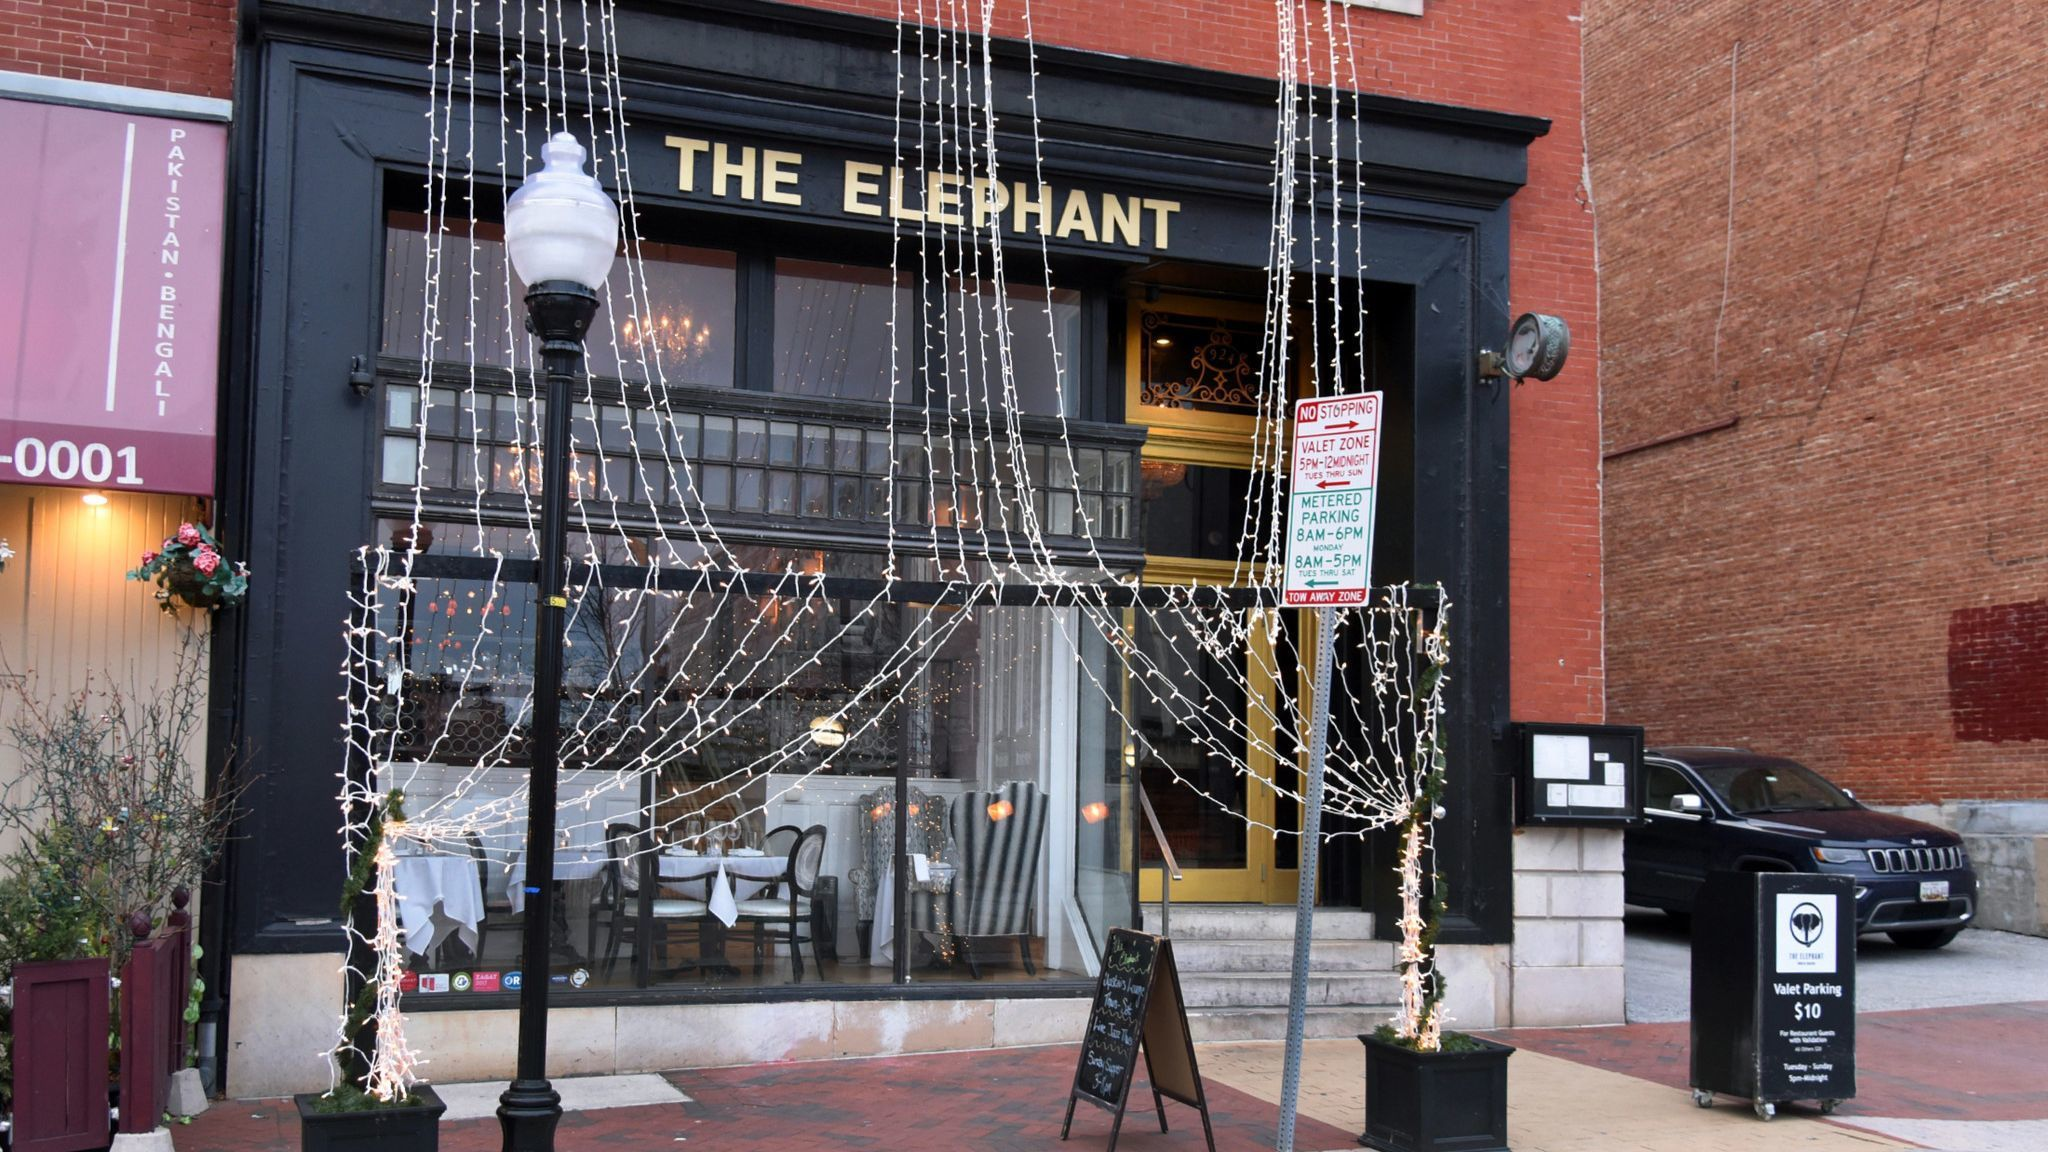 The Elephant building to be sold at auction May 1